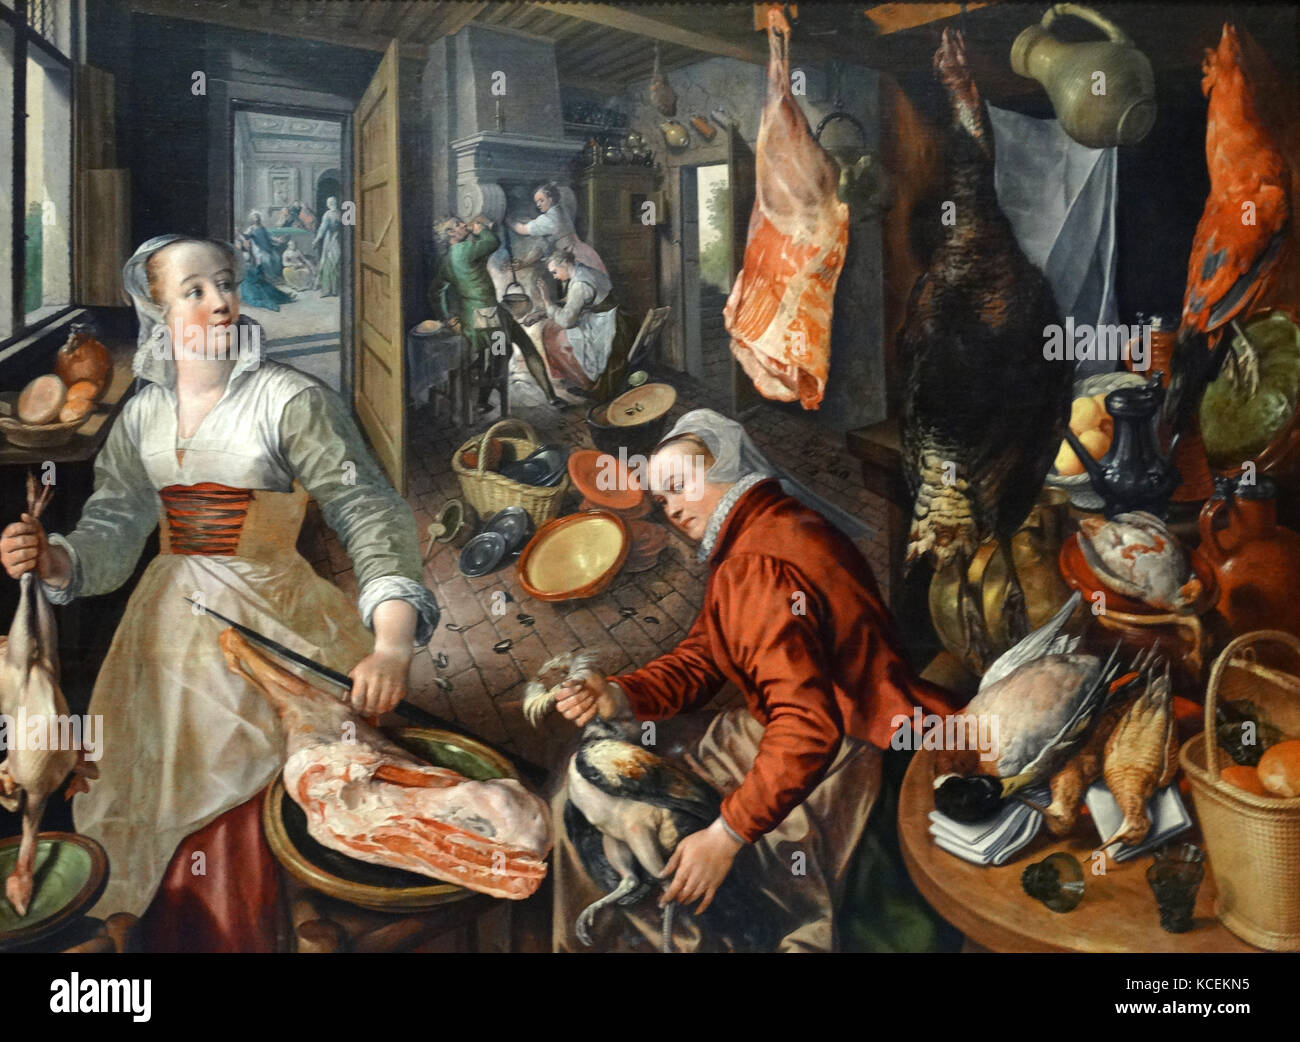 Painting titled 'The Four Elements: Fire' by Joachim Beuckelaer (1533-1574) a Flemish painter. Dated 16th - Stock Image